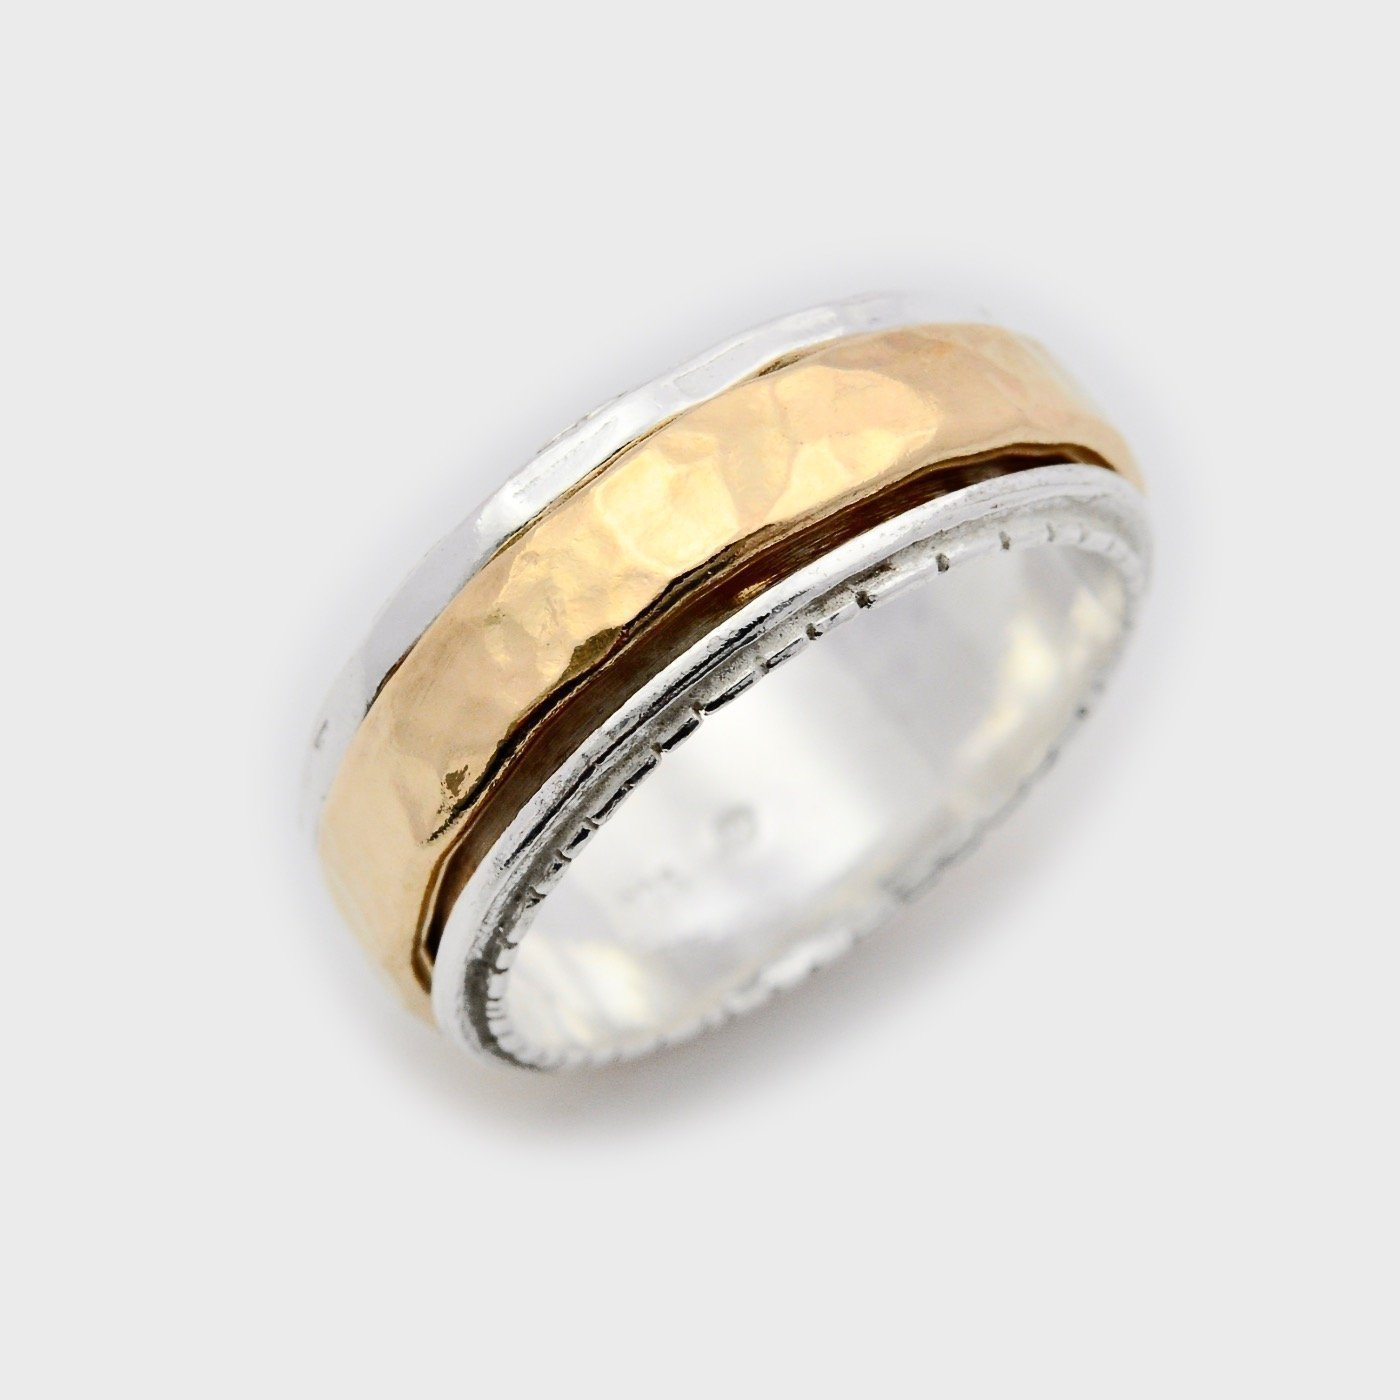 Meditation spinner ring for women hammered spinning wedding band size 6 to 9